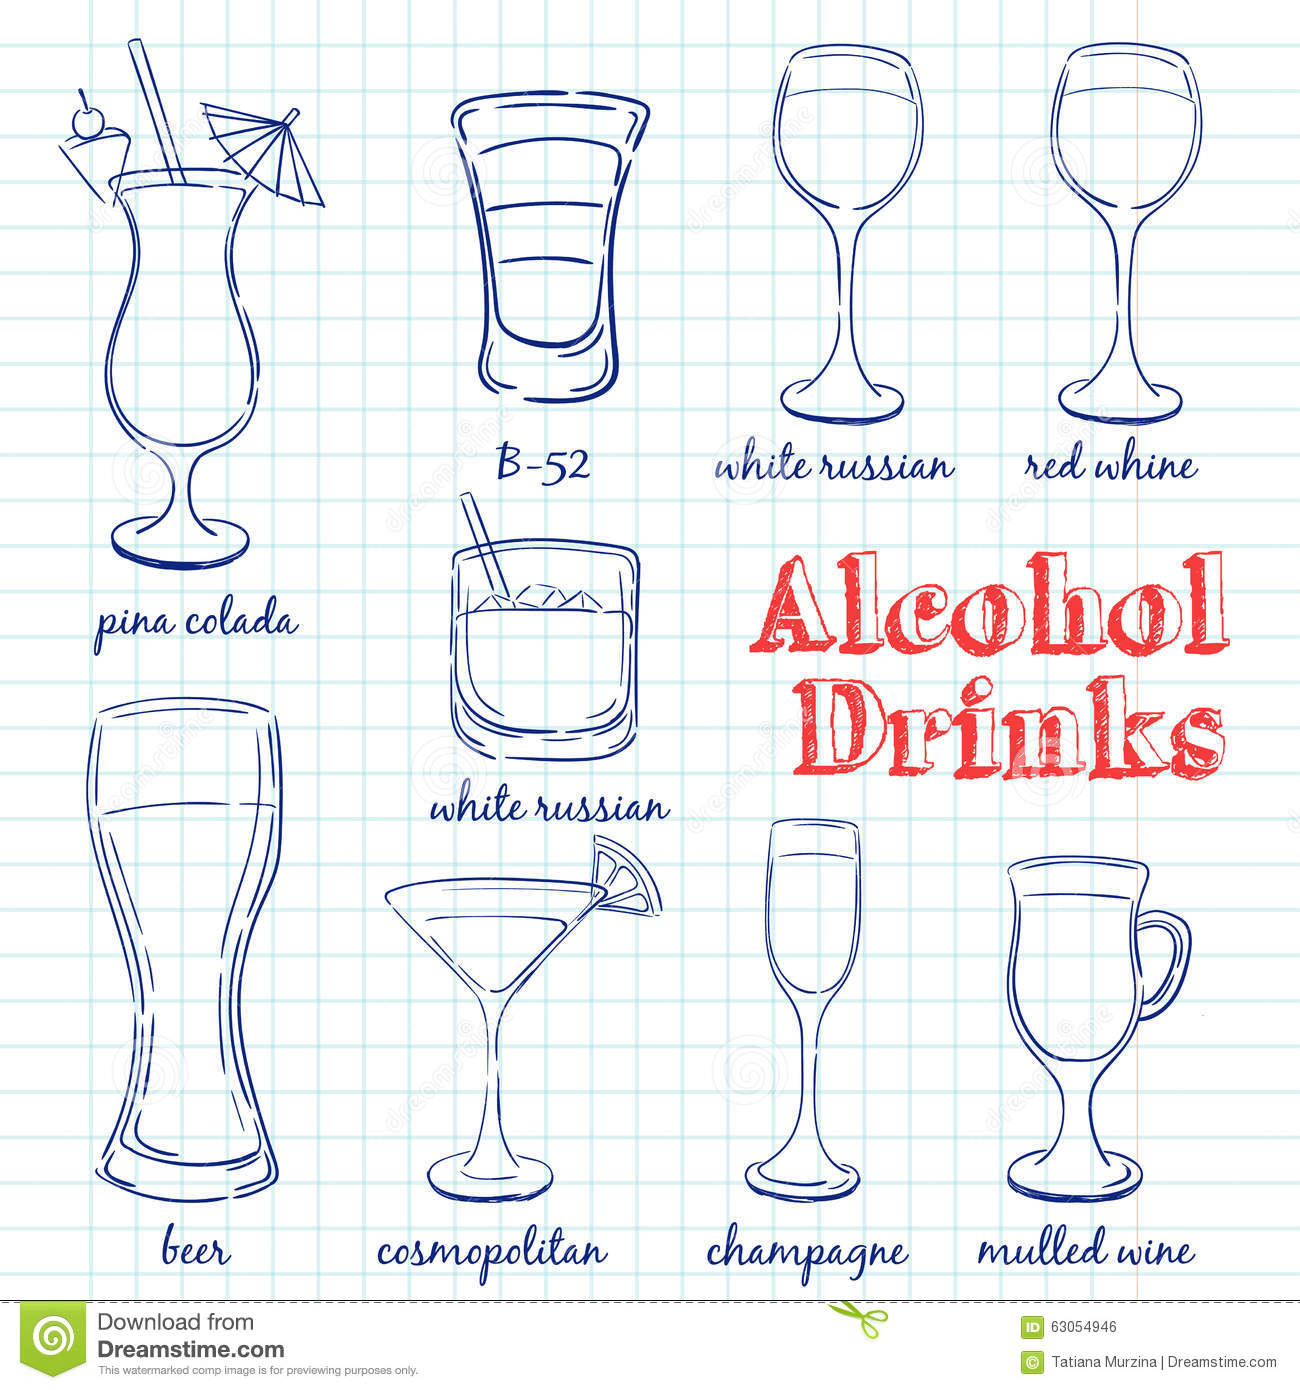 Alcohol drinks hand drawn illustration stock vector for Cocktail recipes with ingredients on hand